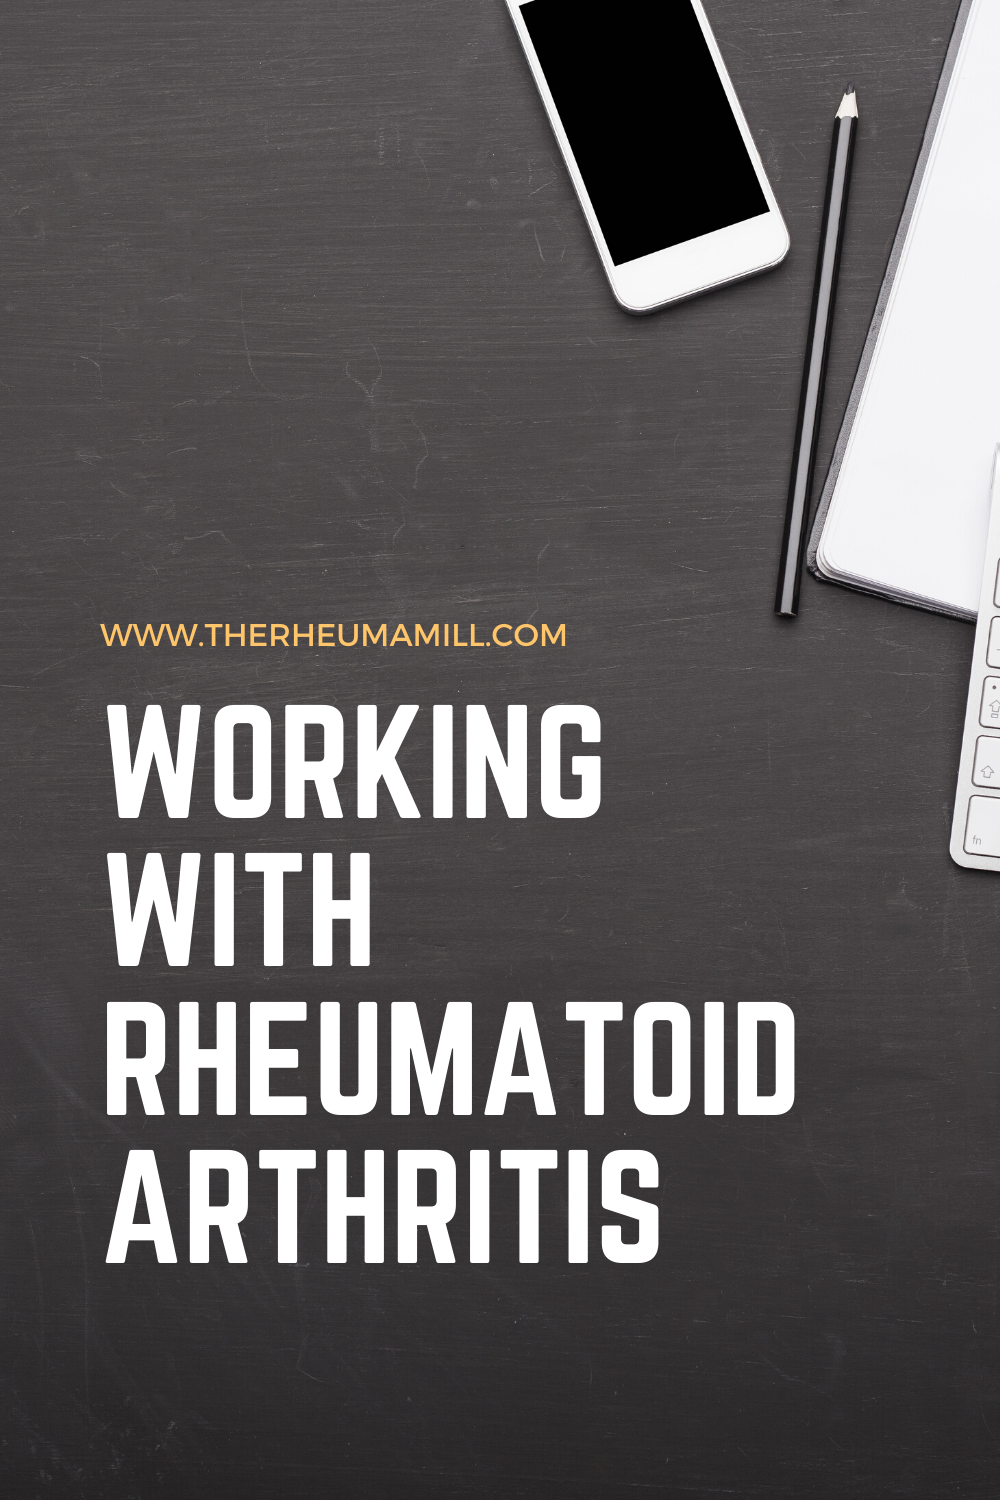 Working with Rheumatoid Arthritis